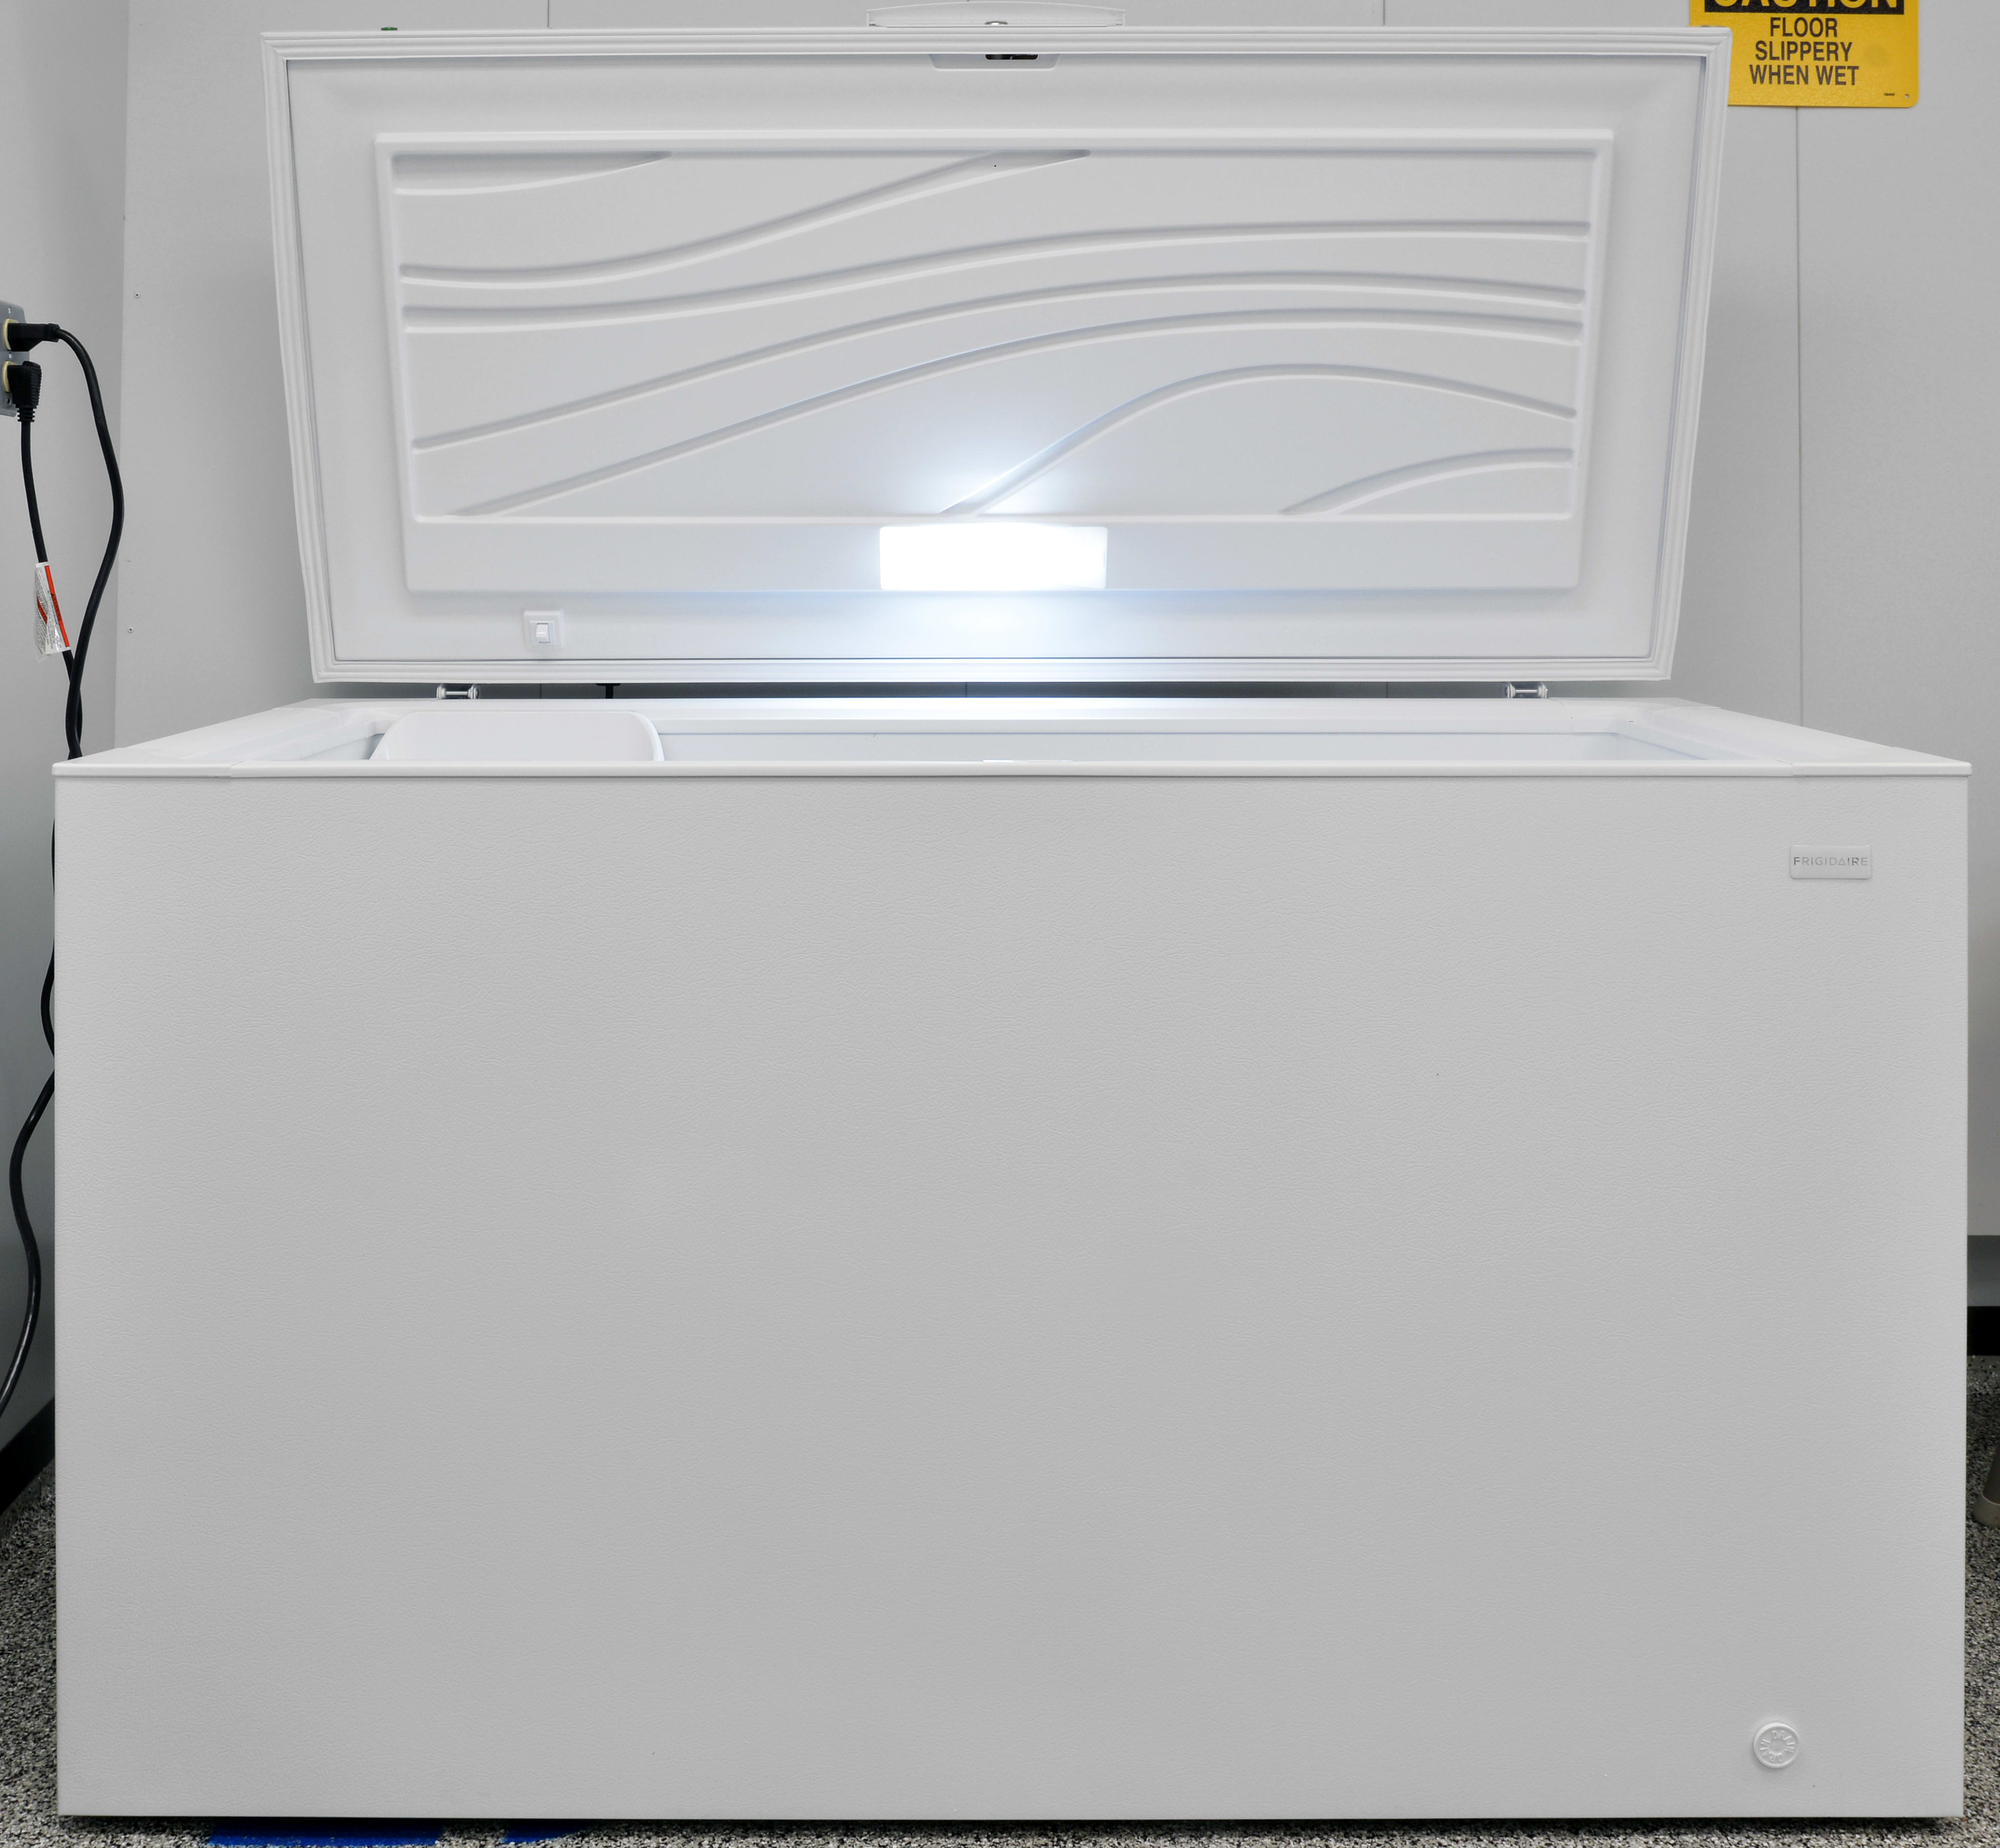 An interior light—no matter how small—is always a welcome addition to a chest freezer like the Frigidaire FFFC16M5QW.